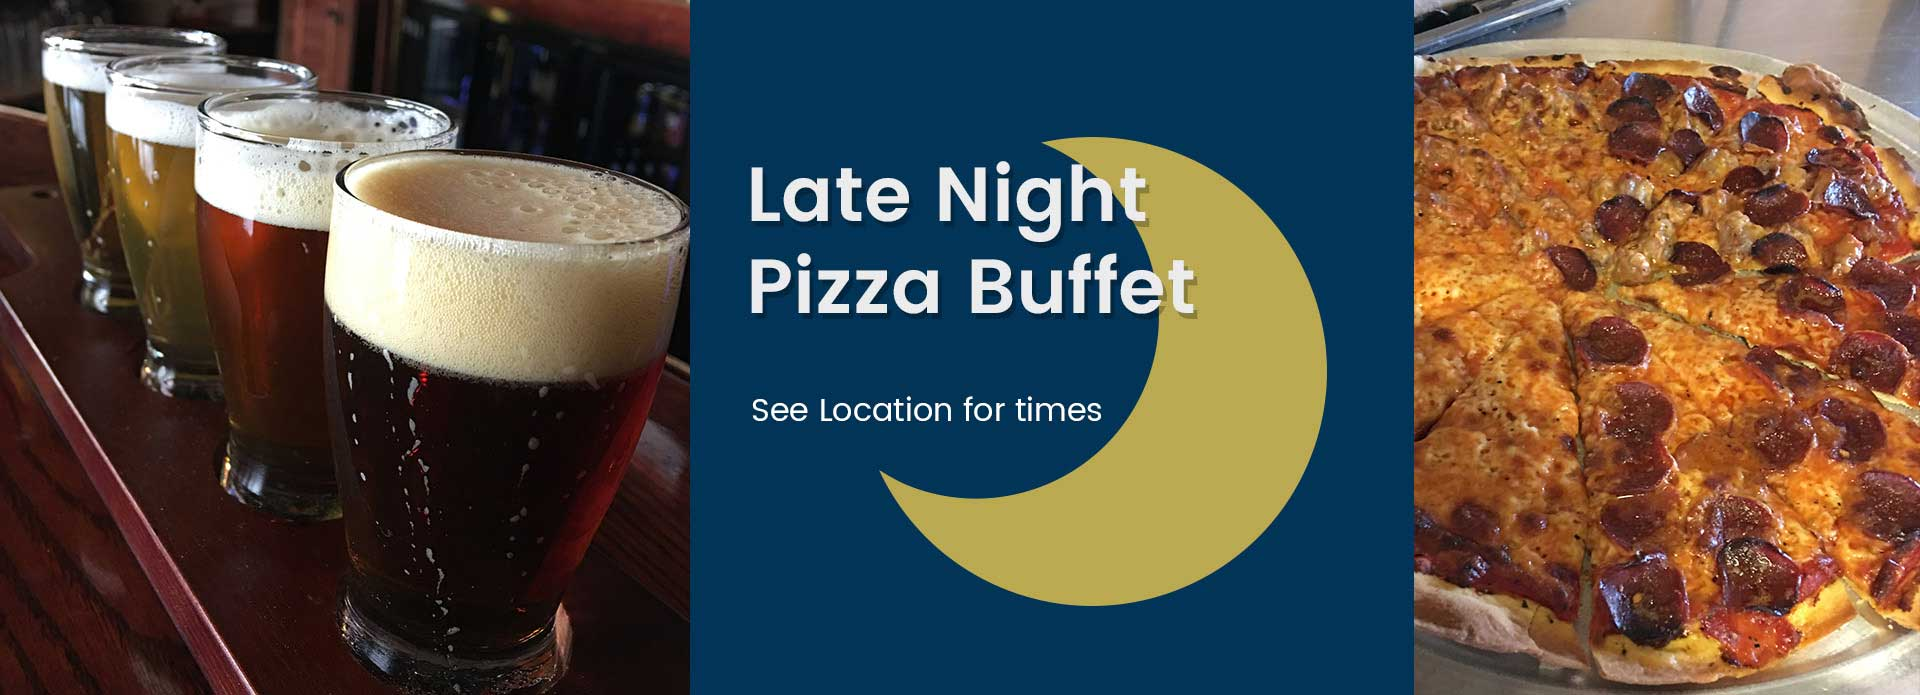 Late night pizza buffet in the Fox Valley, WI